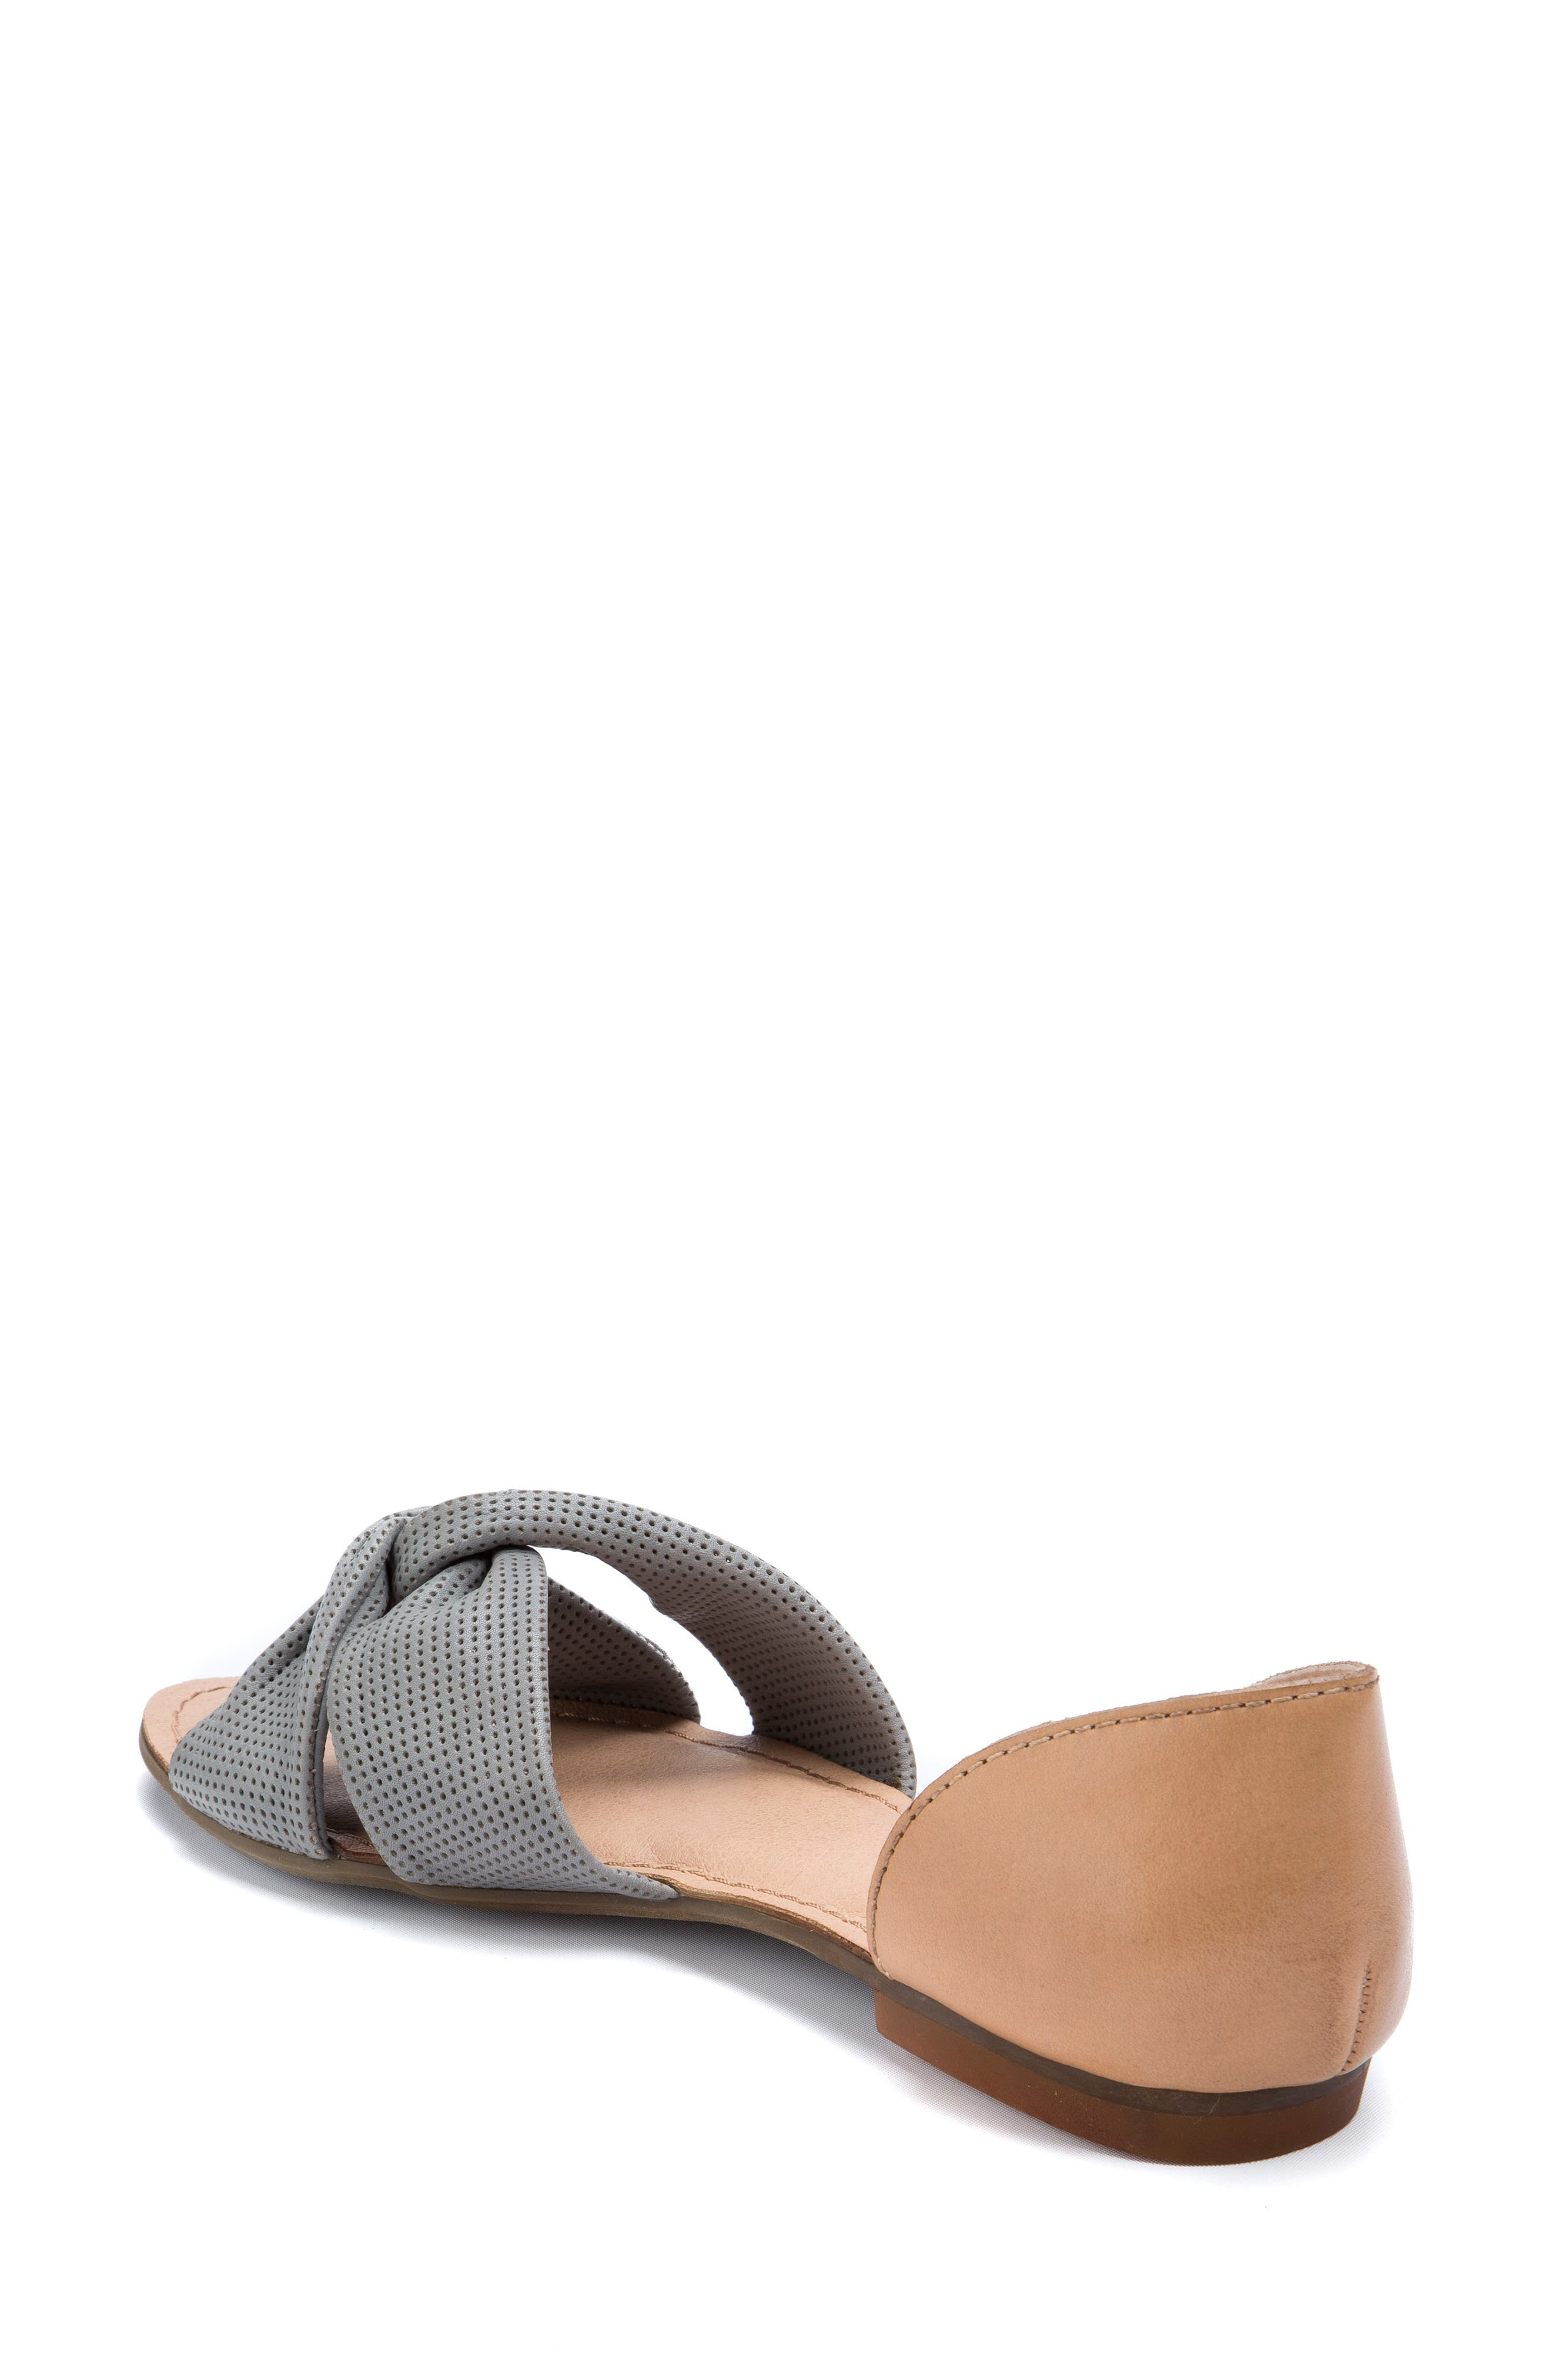 Darcy Perforated Flat Sandal,                             Alternate thumbnail 2, color,                             Mist Grey Leather